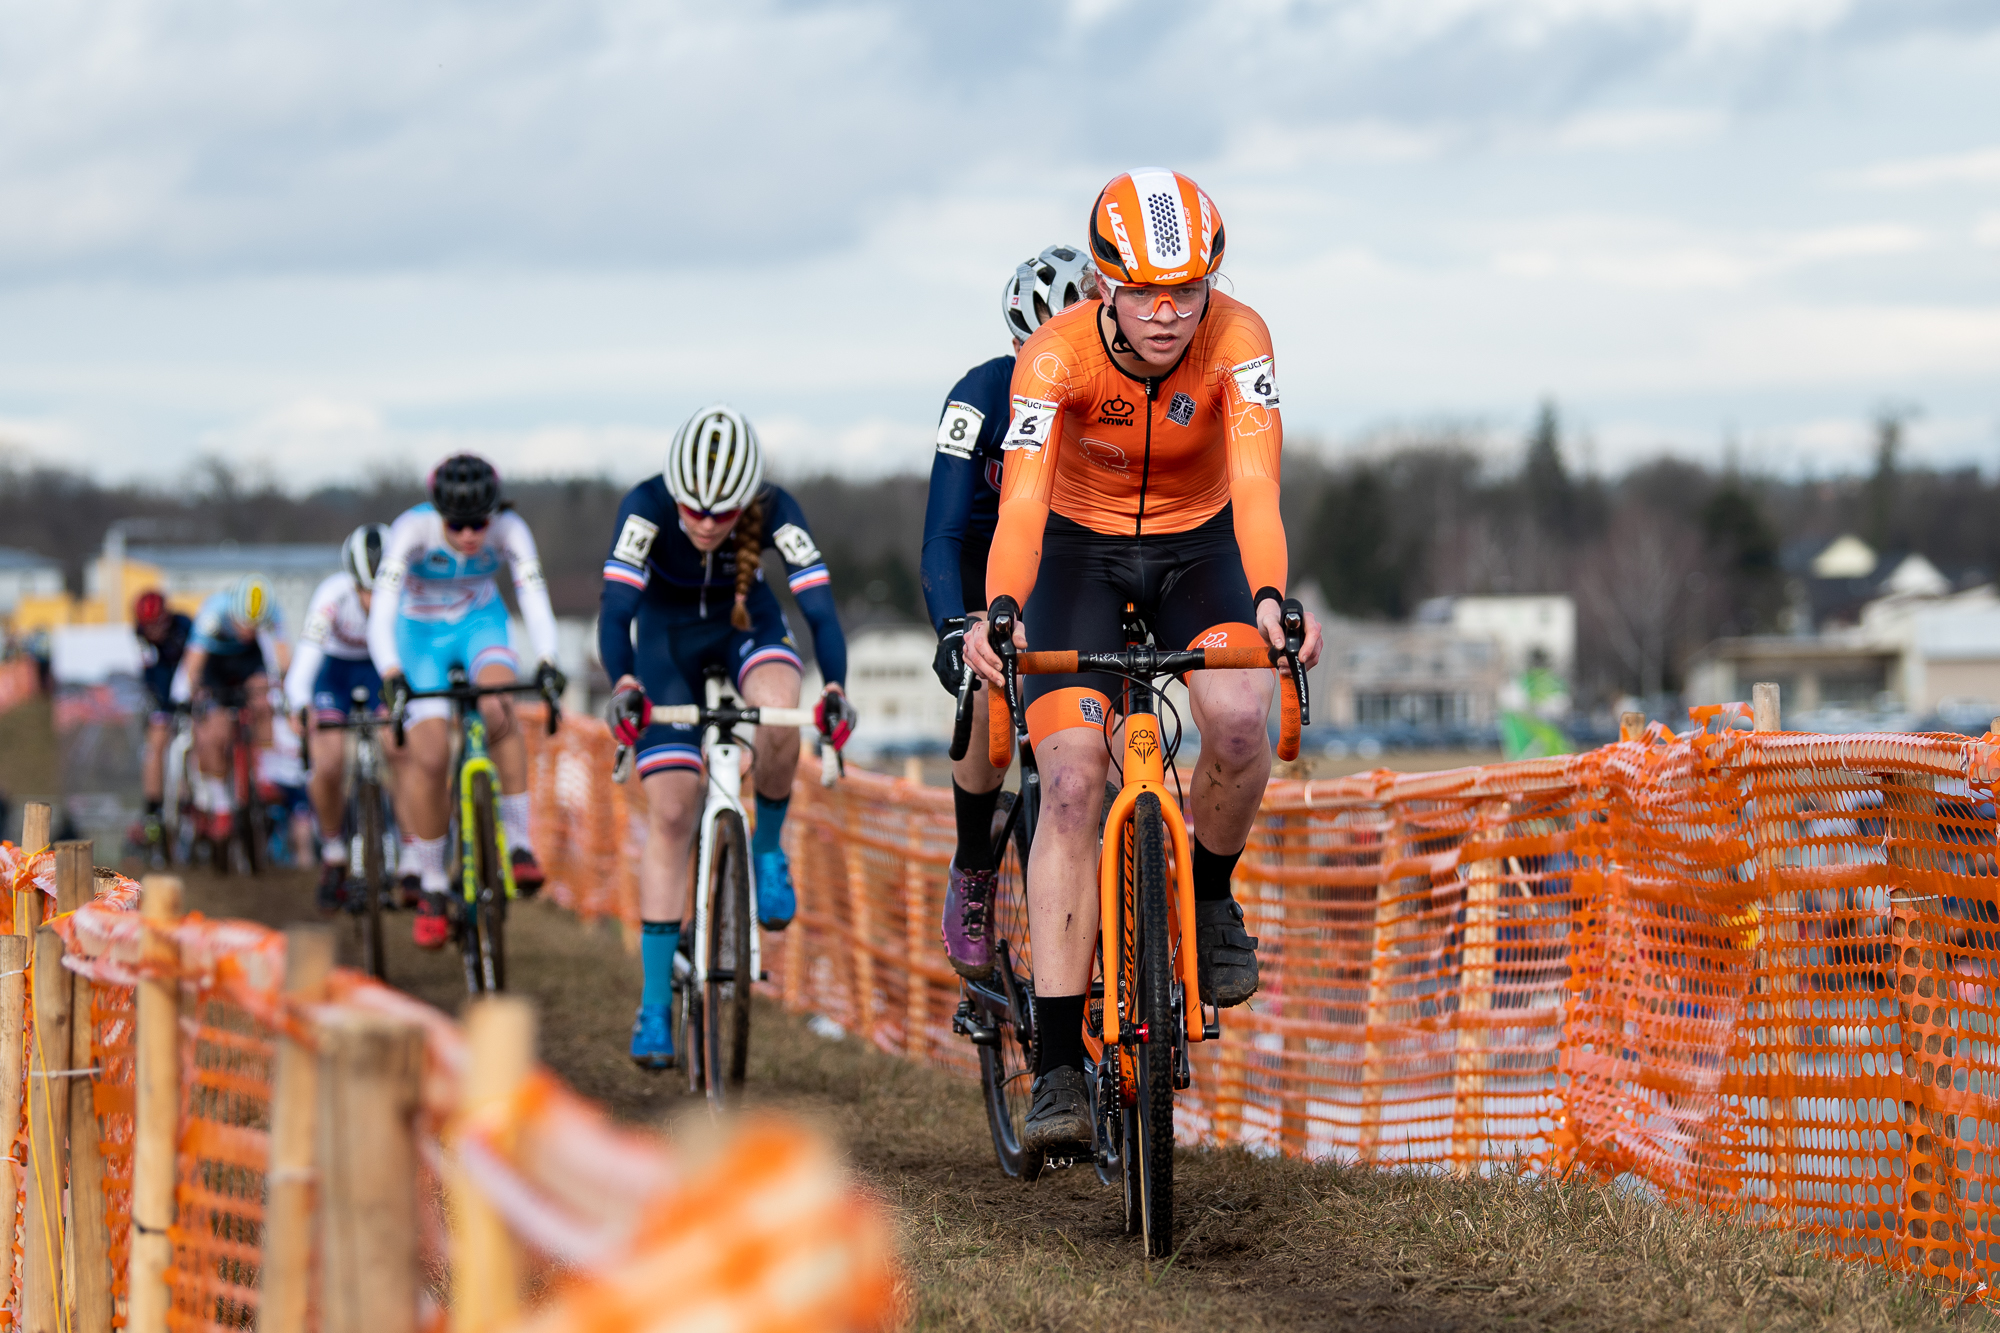 Fem van Empel leads a group at the UCI Cyclocross World Championships - Dubendorf